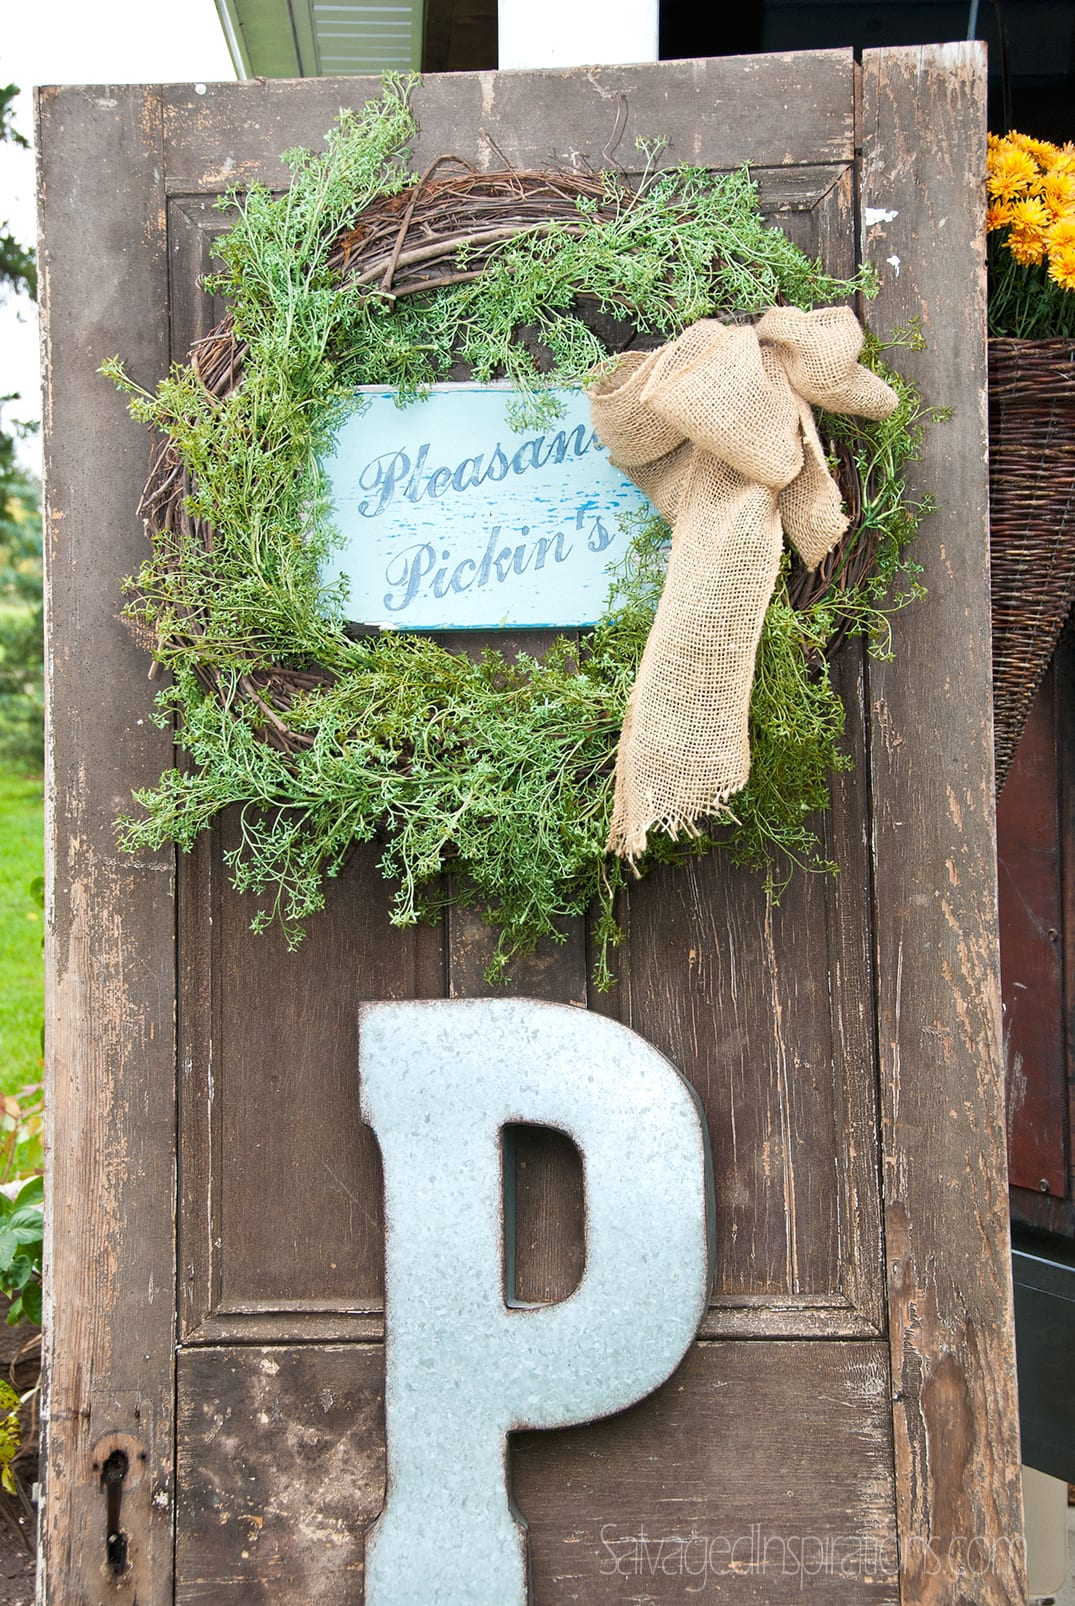 Pleasant-Pickins-Door